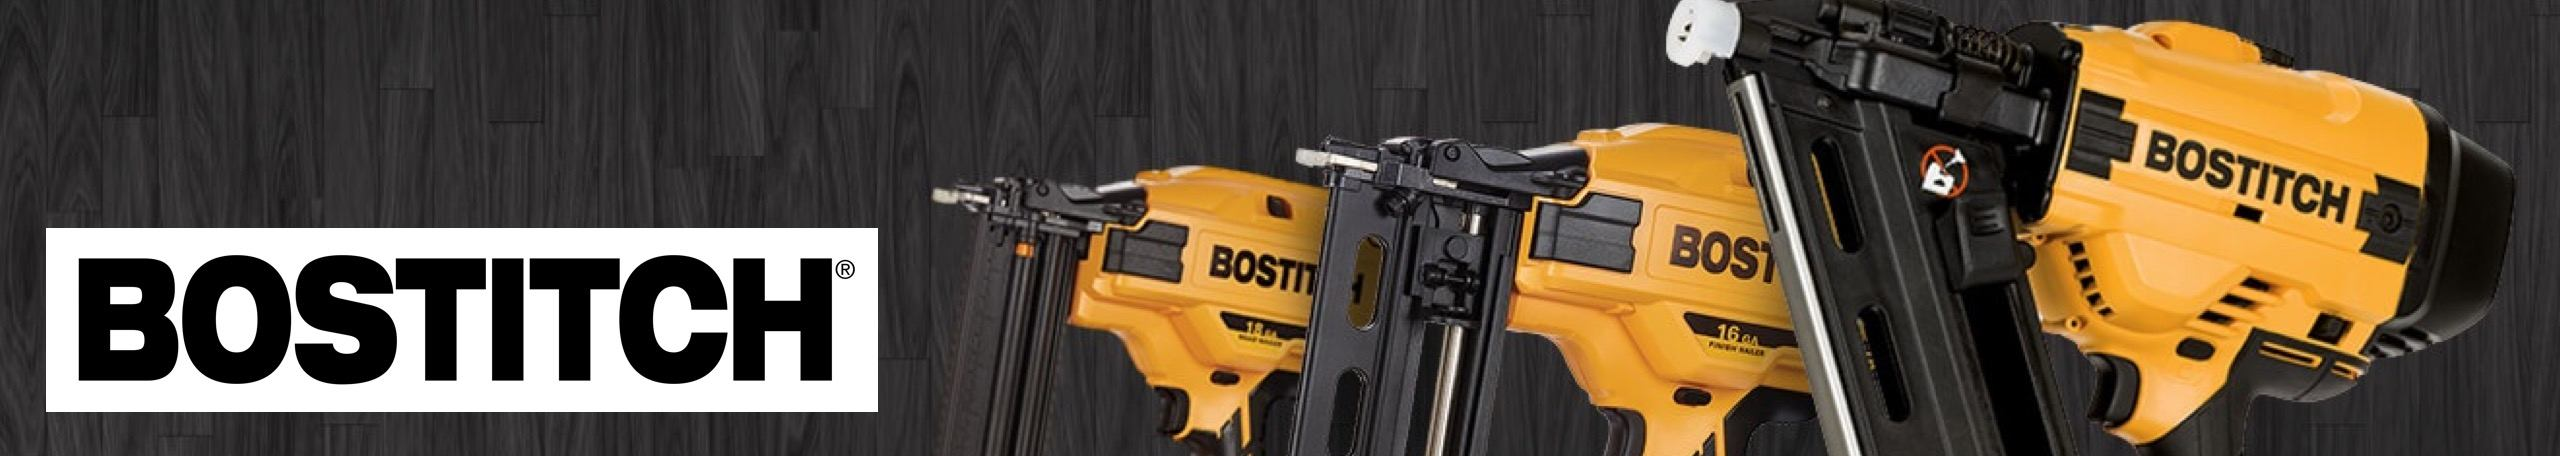 Bostitch logo with some power tools